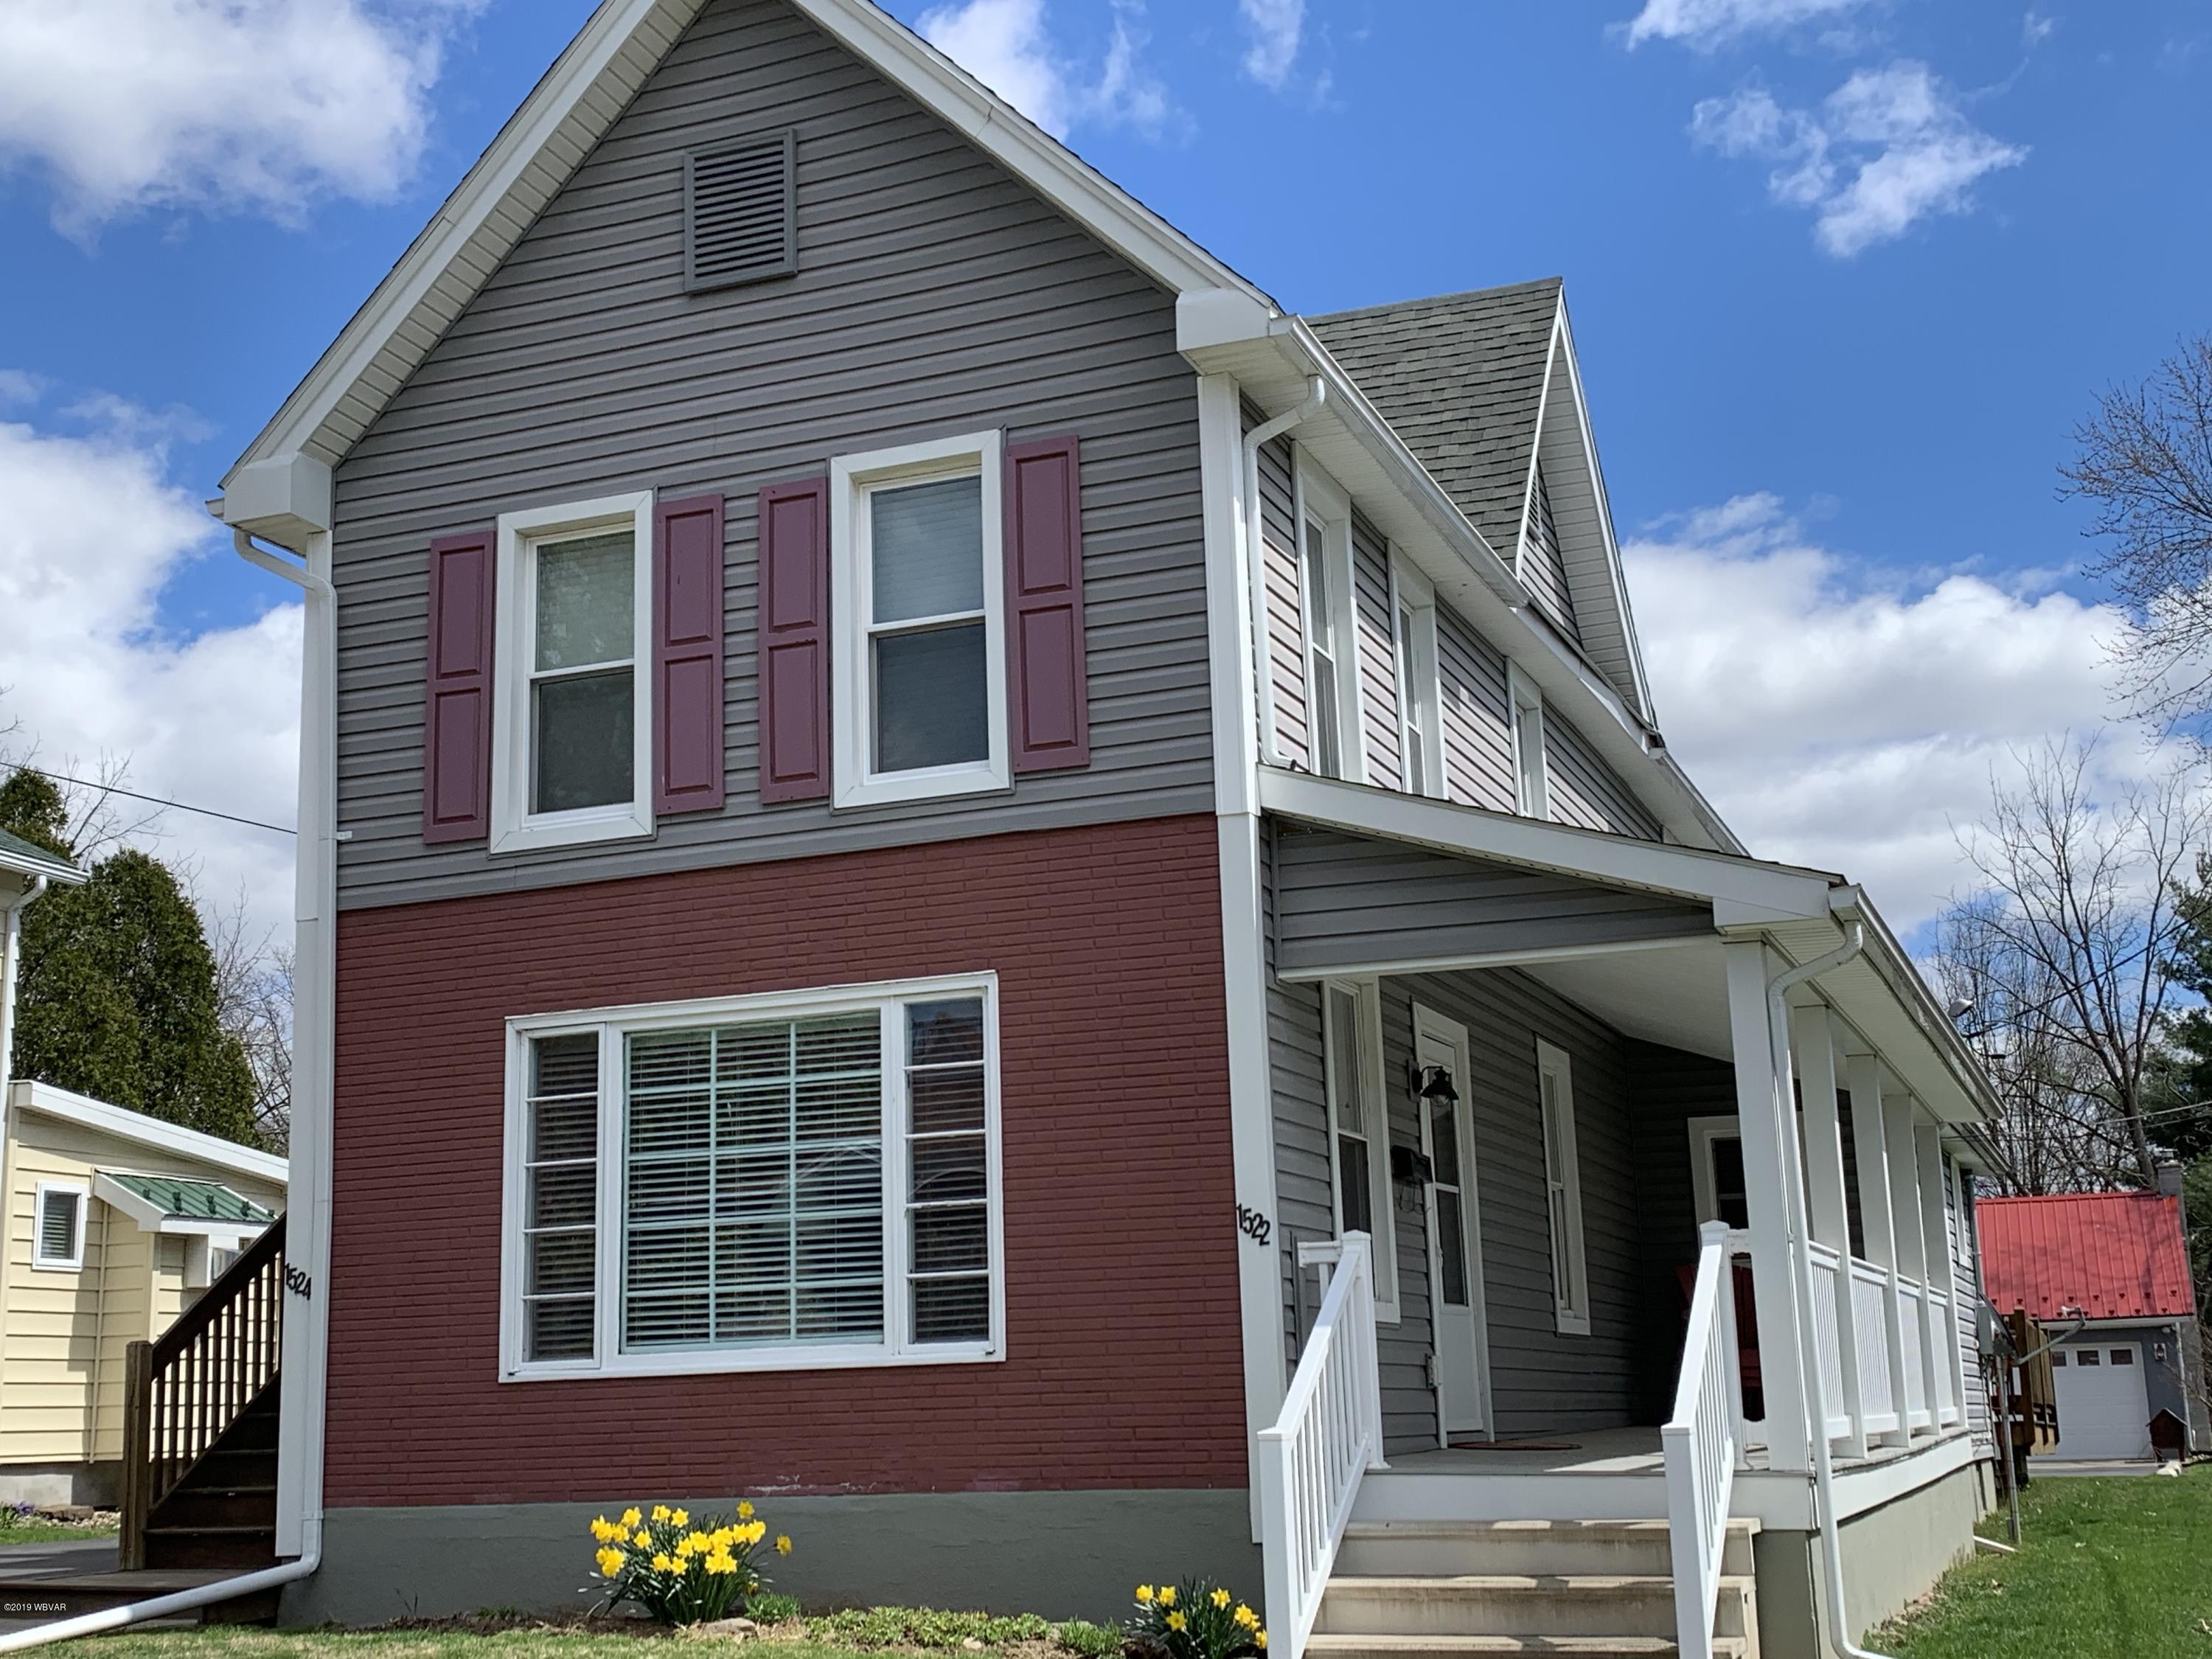 1524 ALMOND STREET,Williamsport,PA 17701,1 Bedroom Bedrooms,1 BathroomBathrooms,Resid-lease/rental,ALMOND,WB-86961